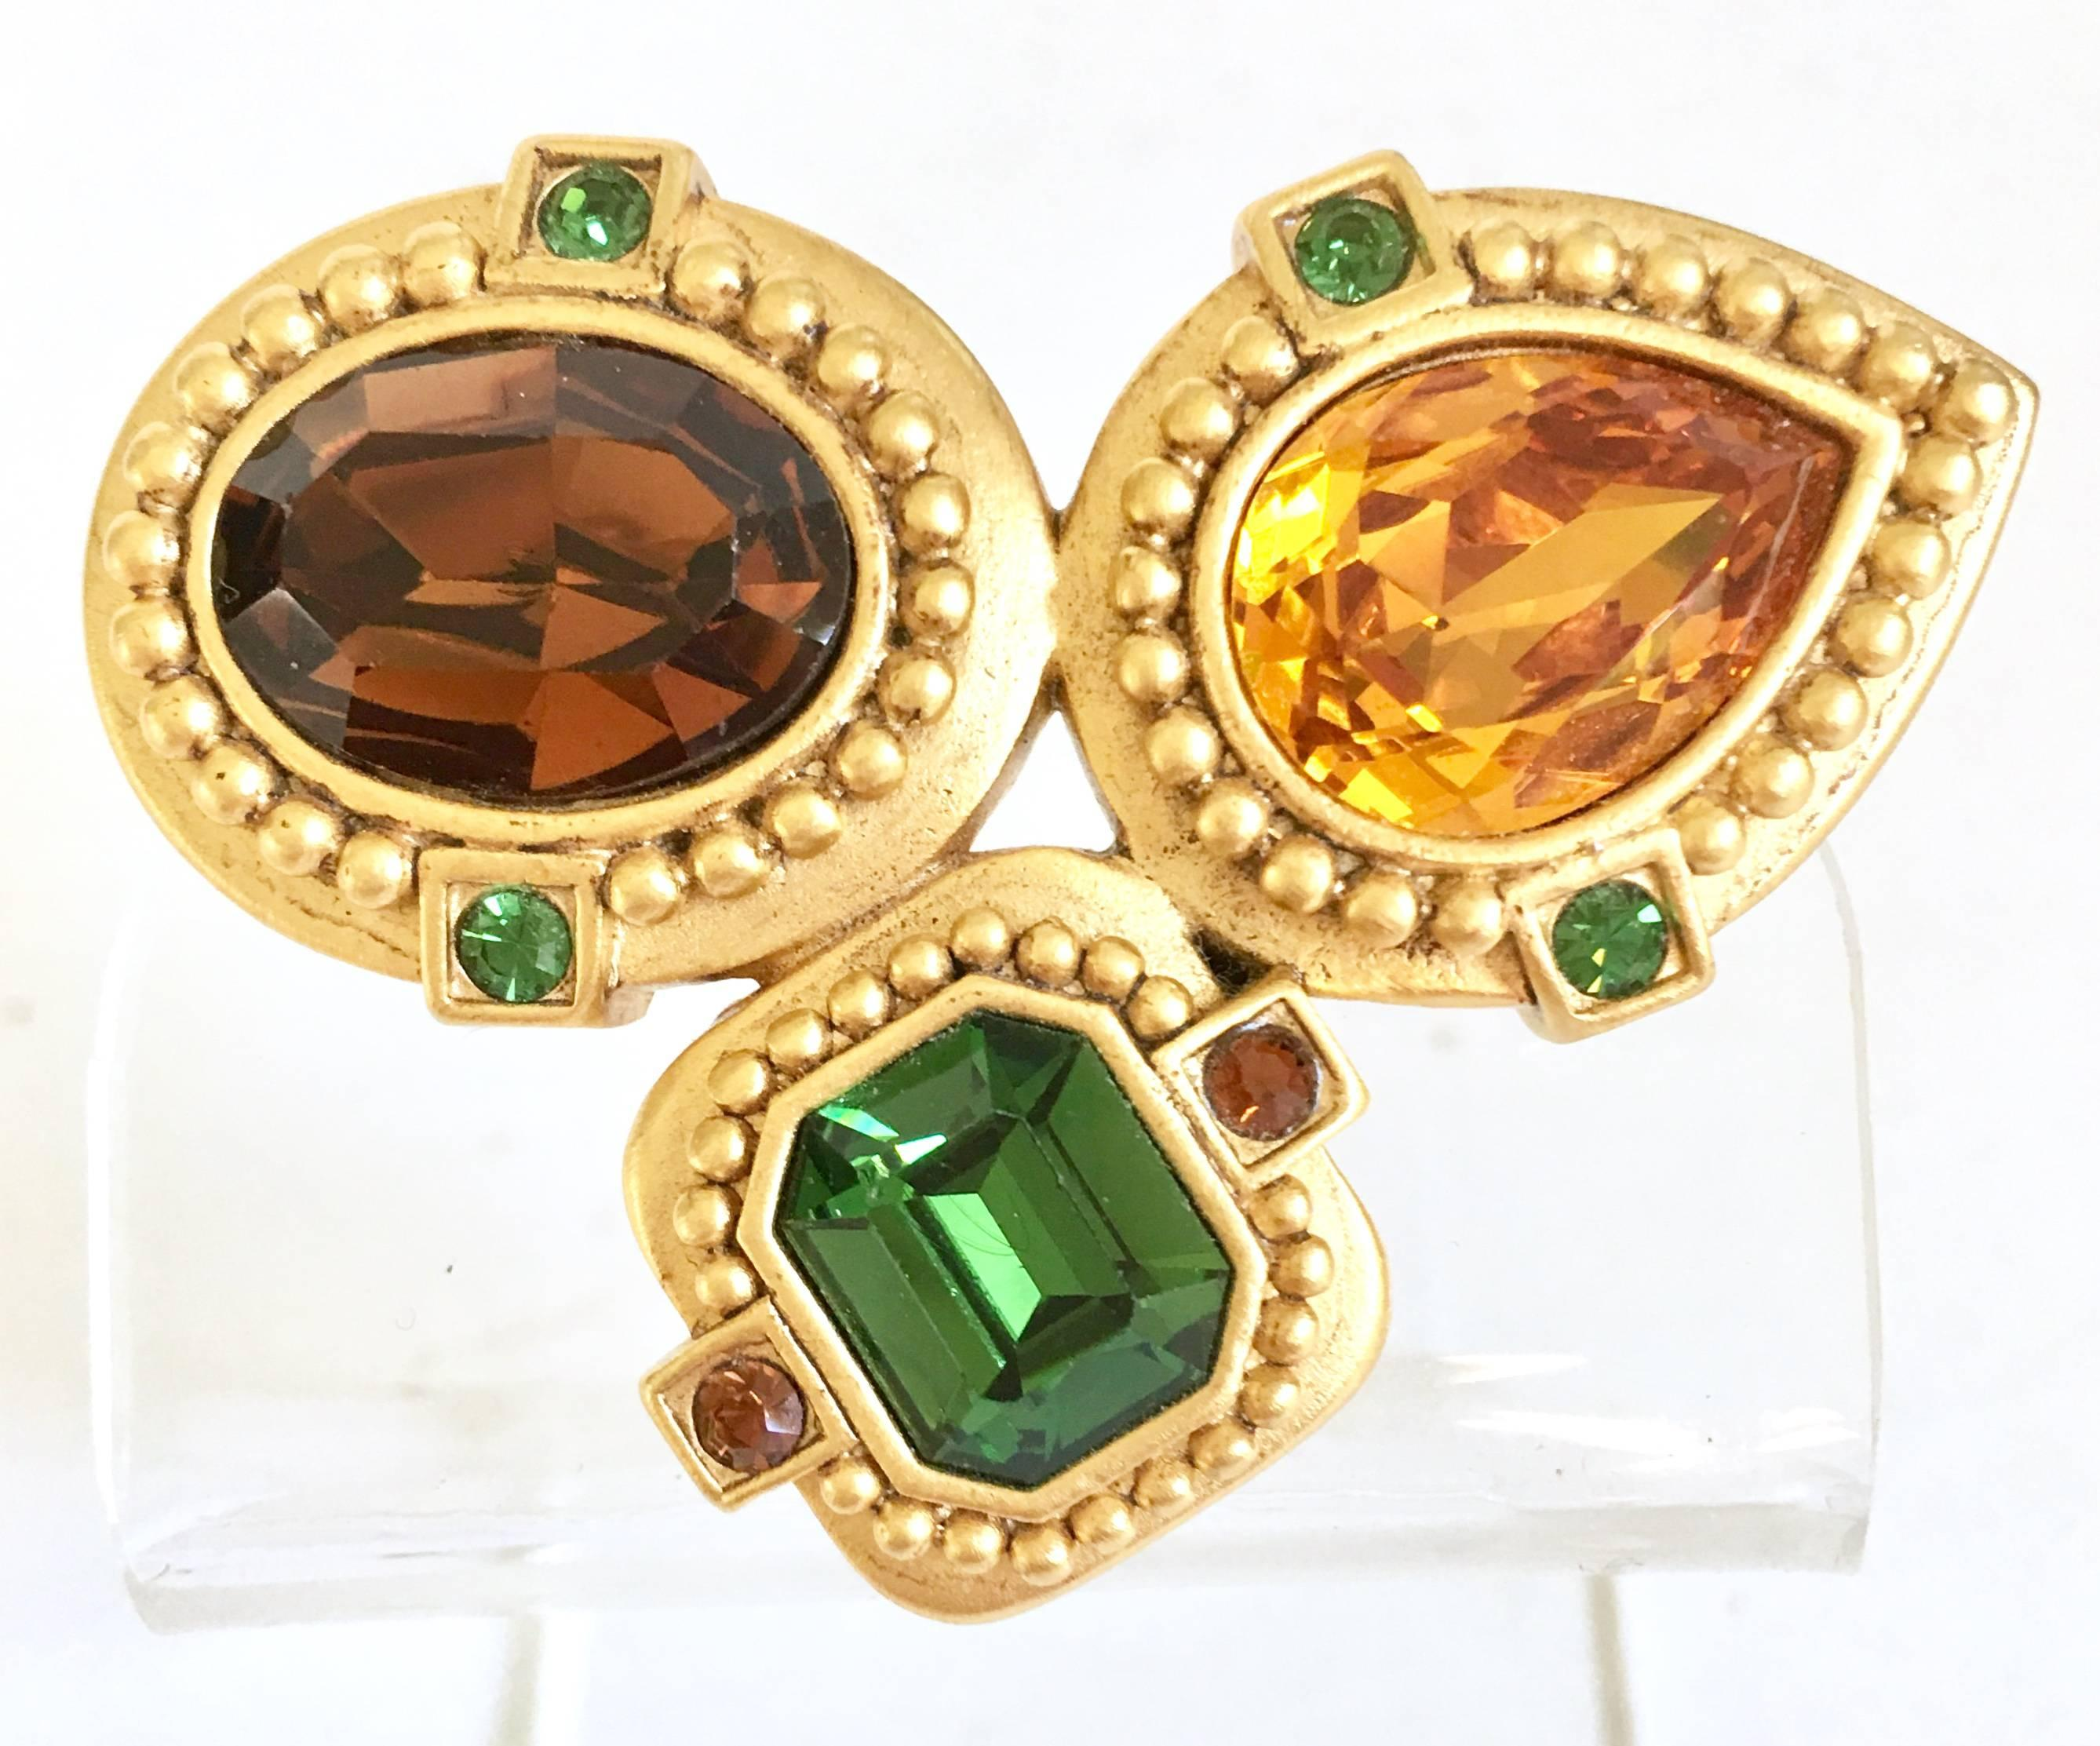 maire gold colombian tiora co gp earrings emerald product lombia